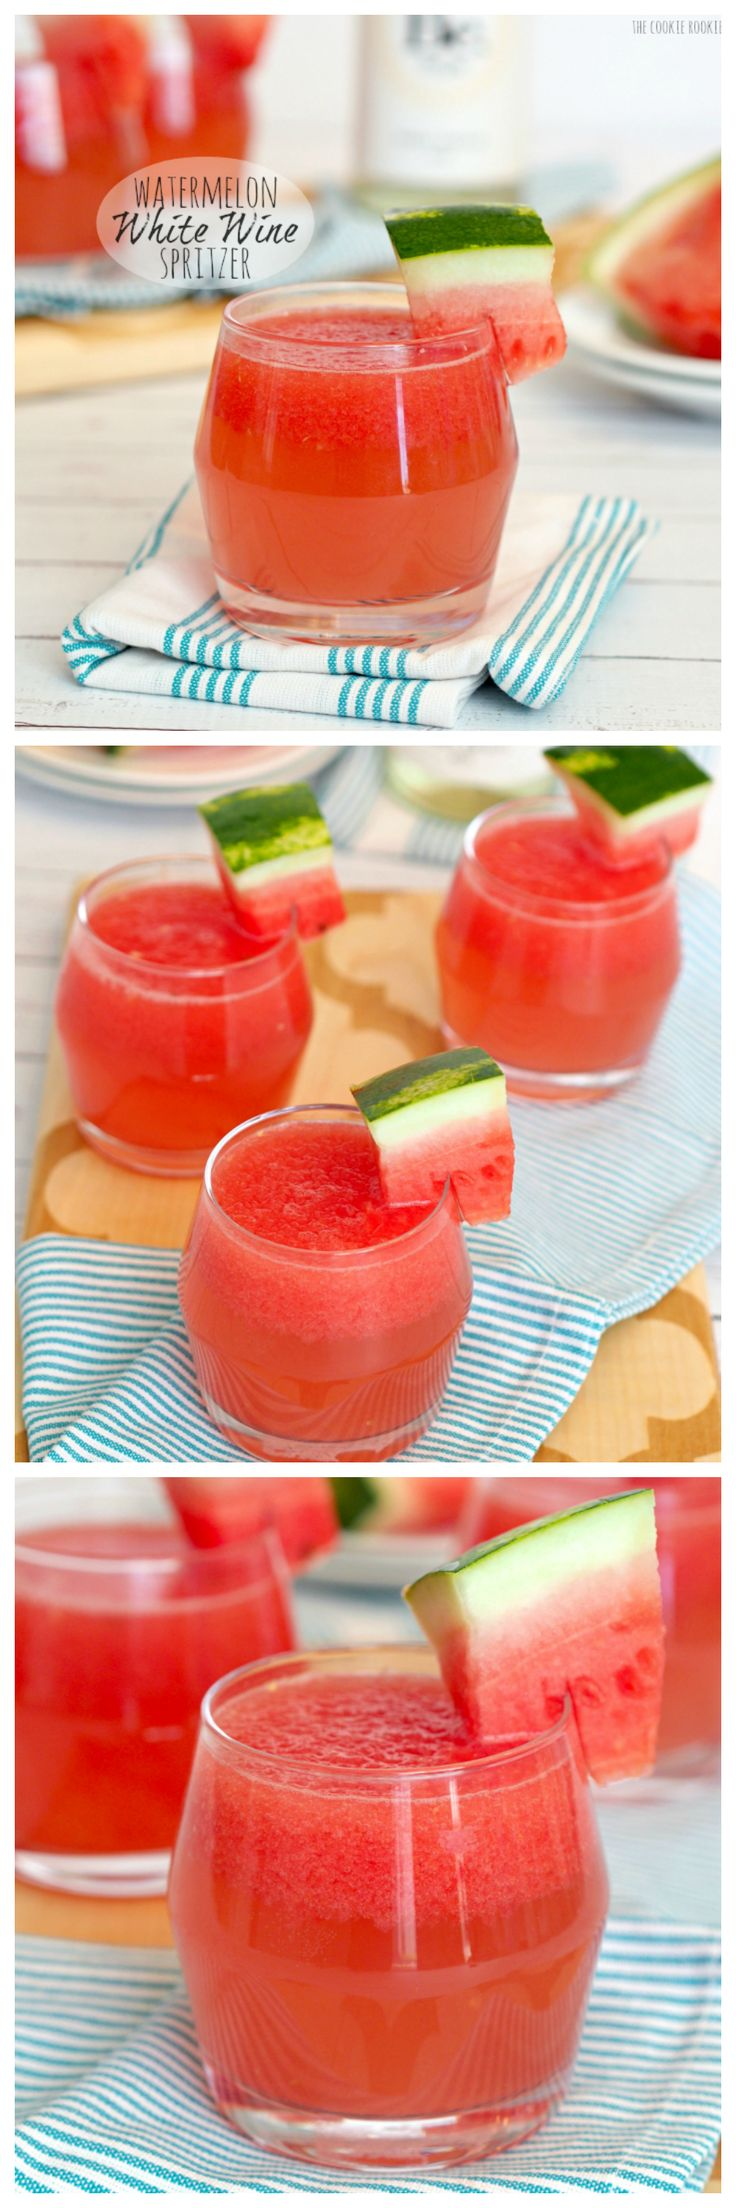 Watermelon White Wine Spritzer! Yum! I'm prolonging Summer with this easy cocktail.  SO GOOD! - The Cookie Rookie